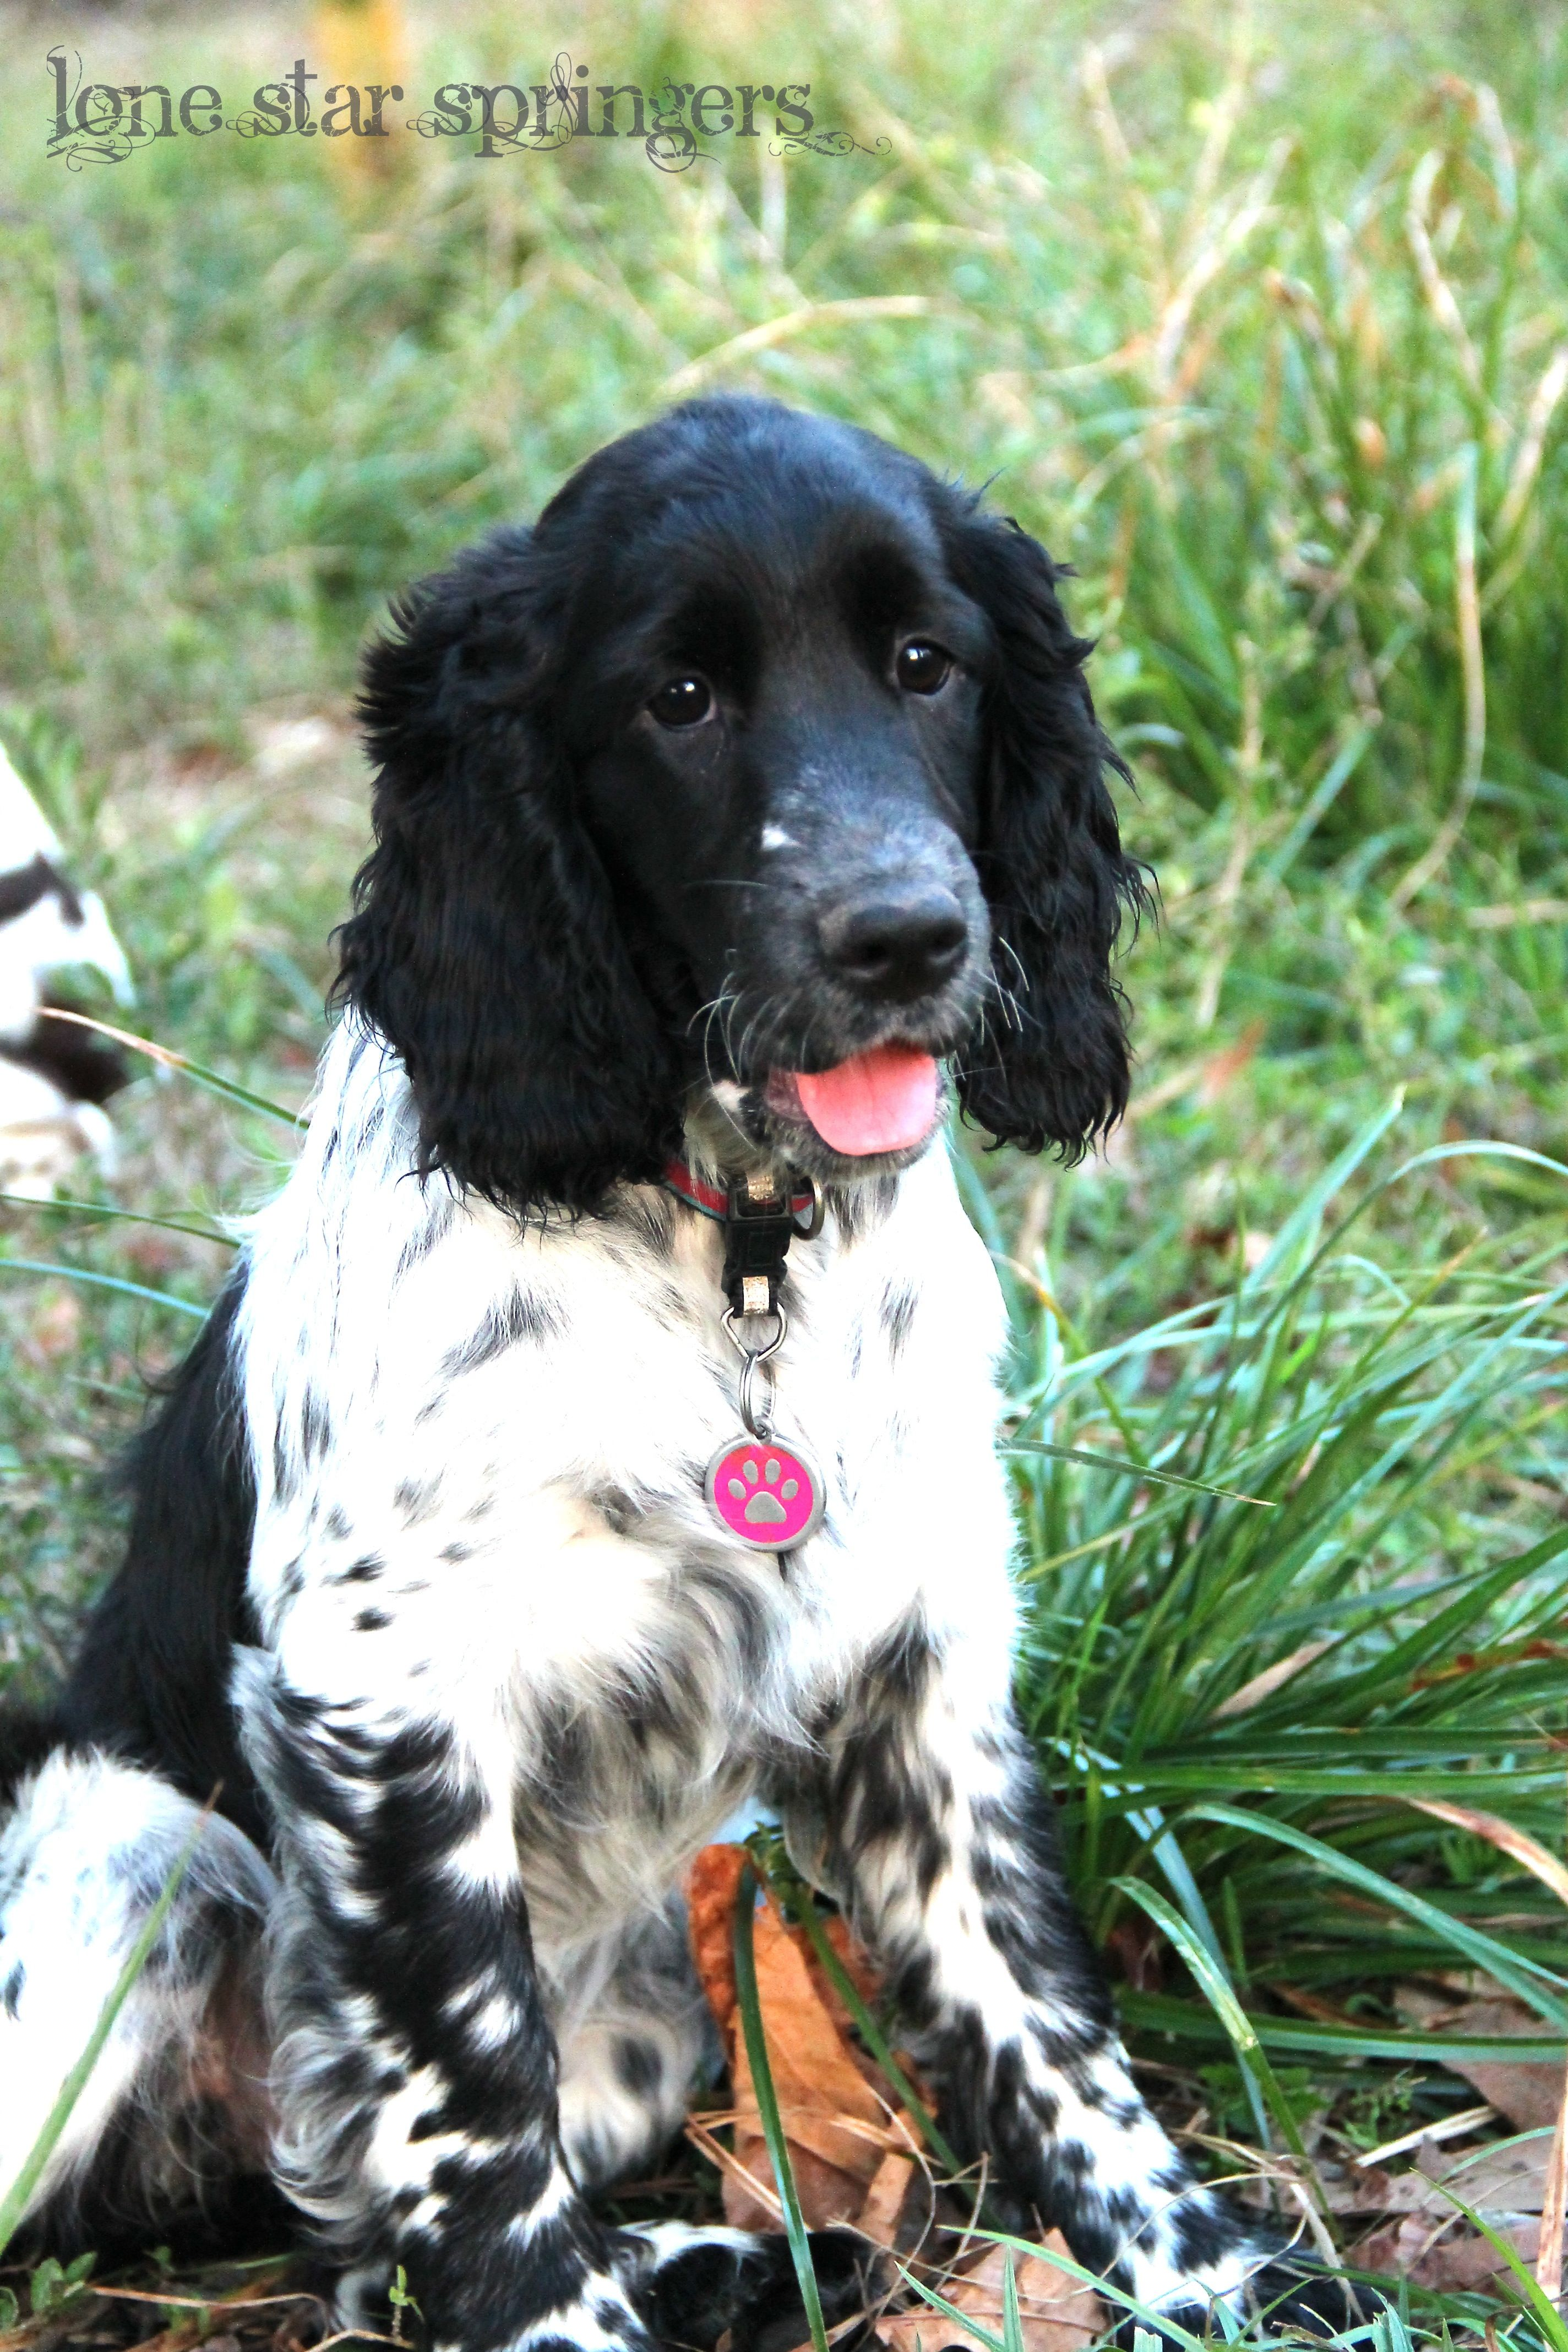 Dory One Of Our European English Springer Spaniels Love The Freckles 3 Lone Star Springers Springer Spaniel Spaniel Dog English Springer Spaniel